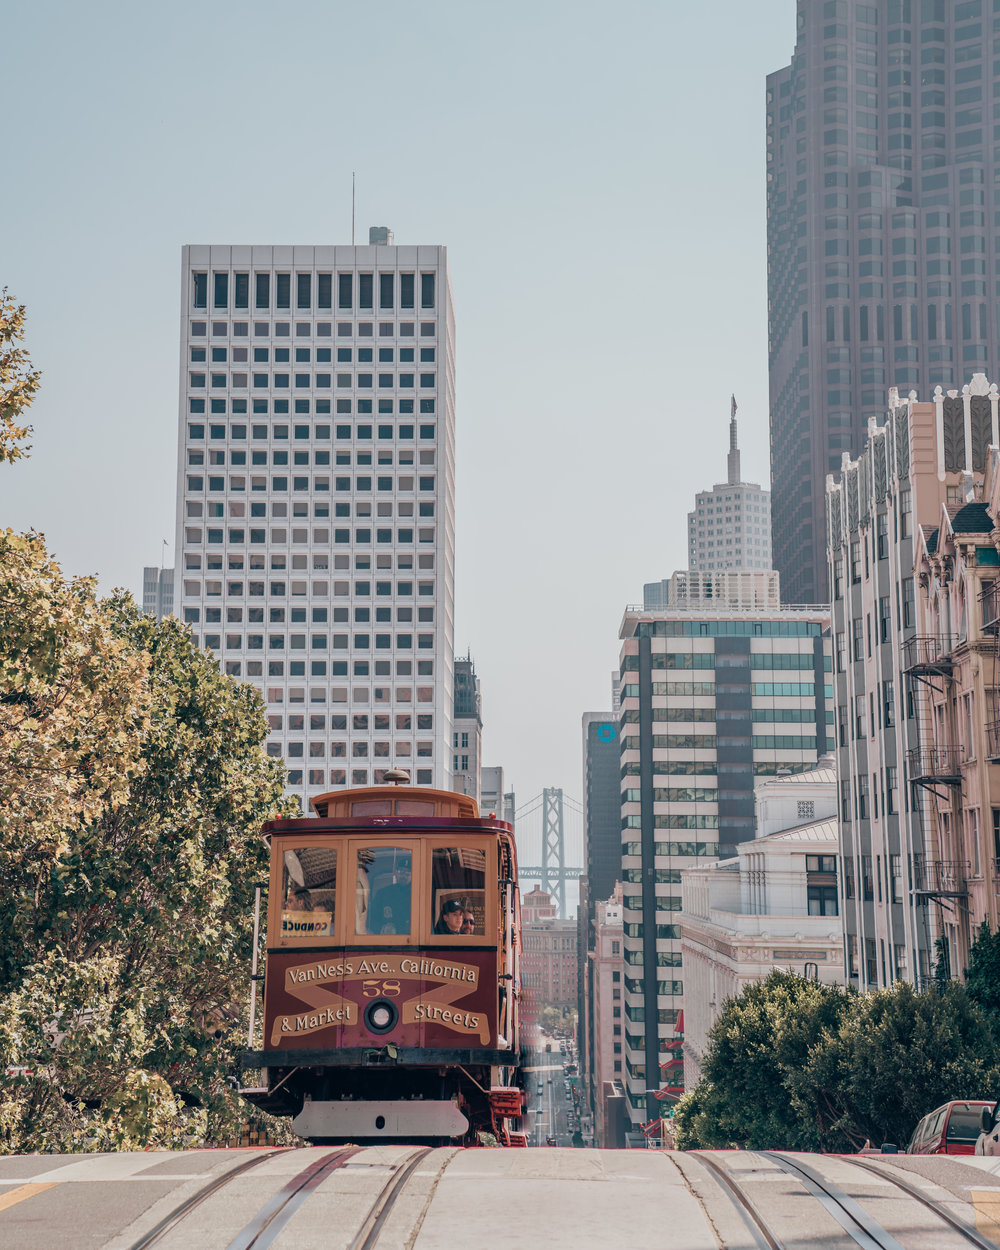 Cable Car, Bay Bridge, Nob Hill, San Francisco, California